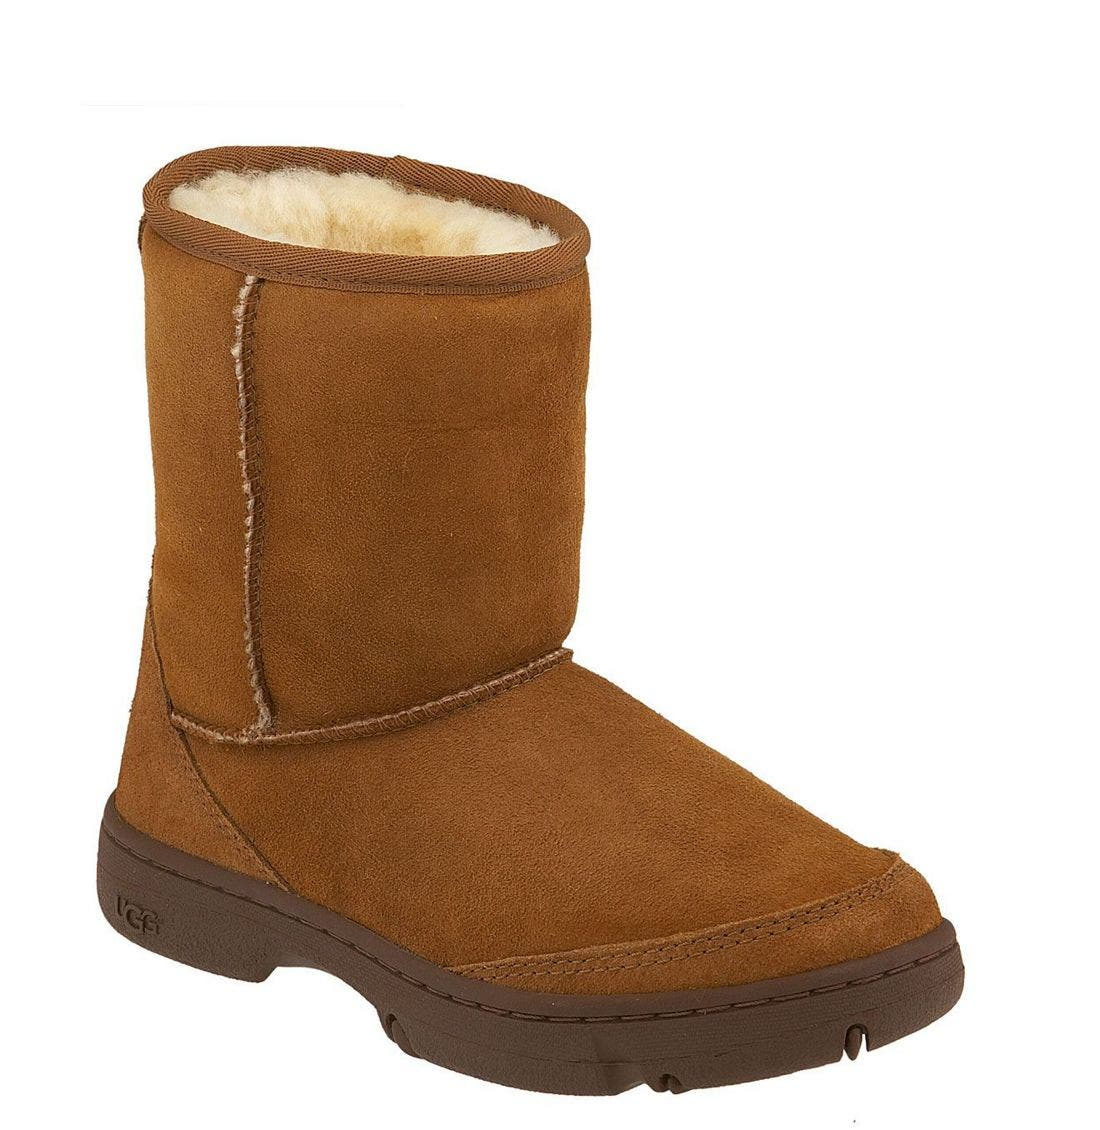 Main Image - UGG® Australia 'Ultimate' Boot (Toddler, Little Kid & Big Kid)